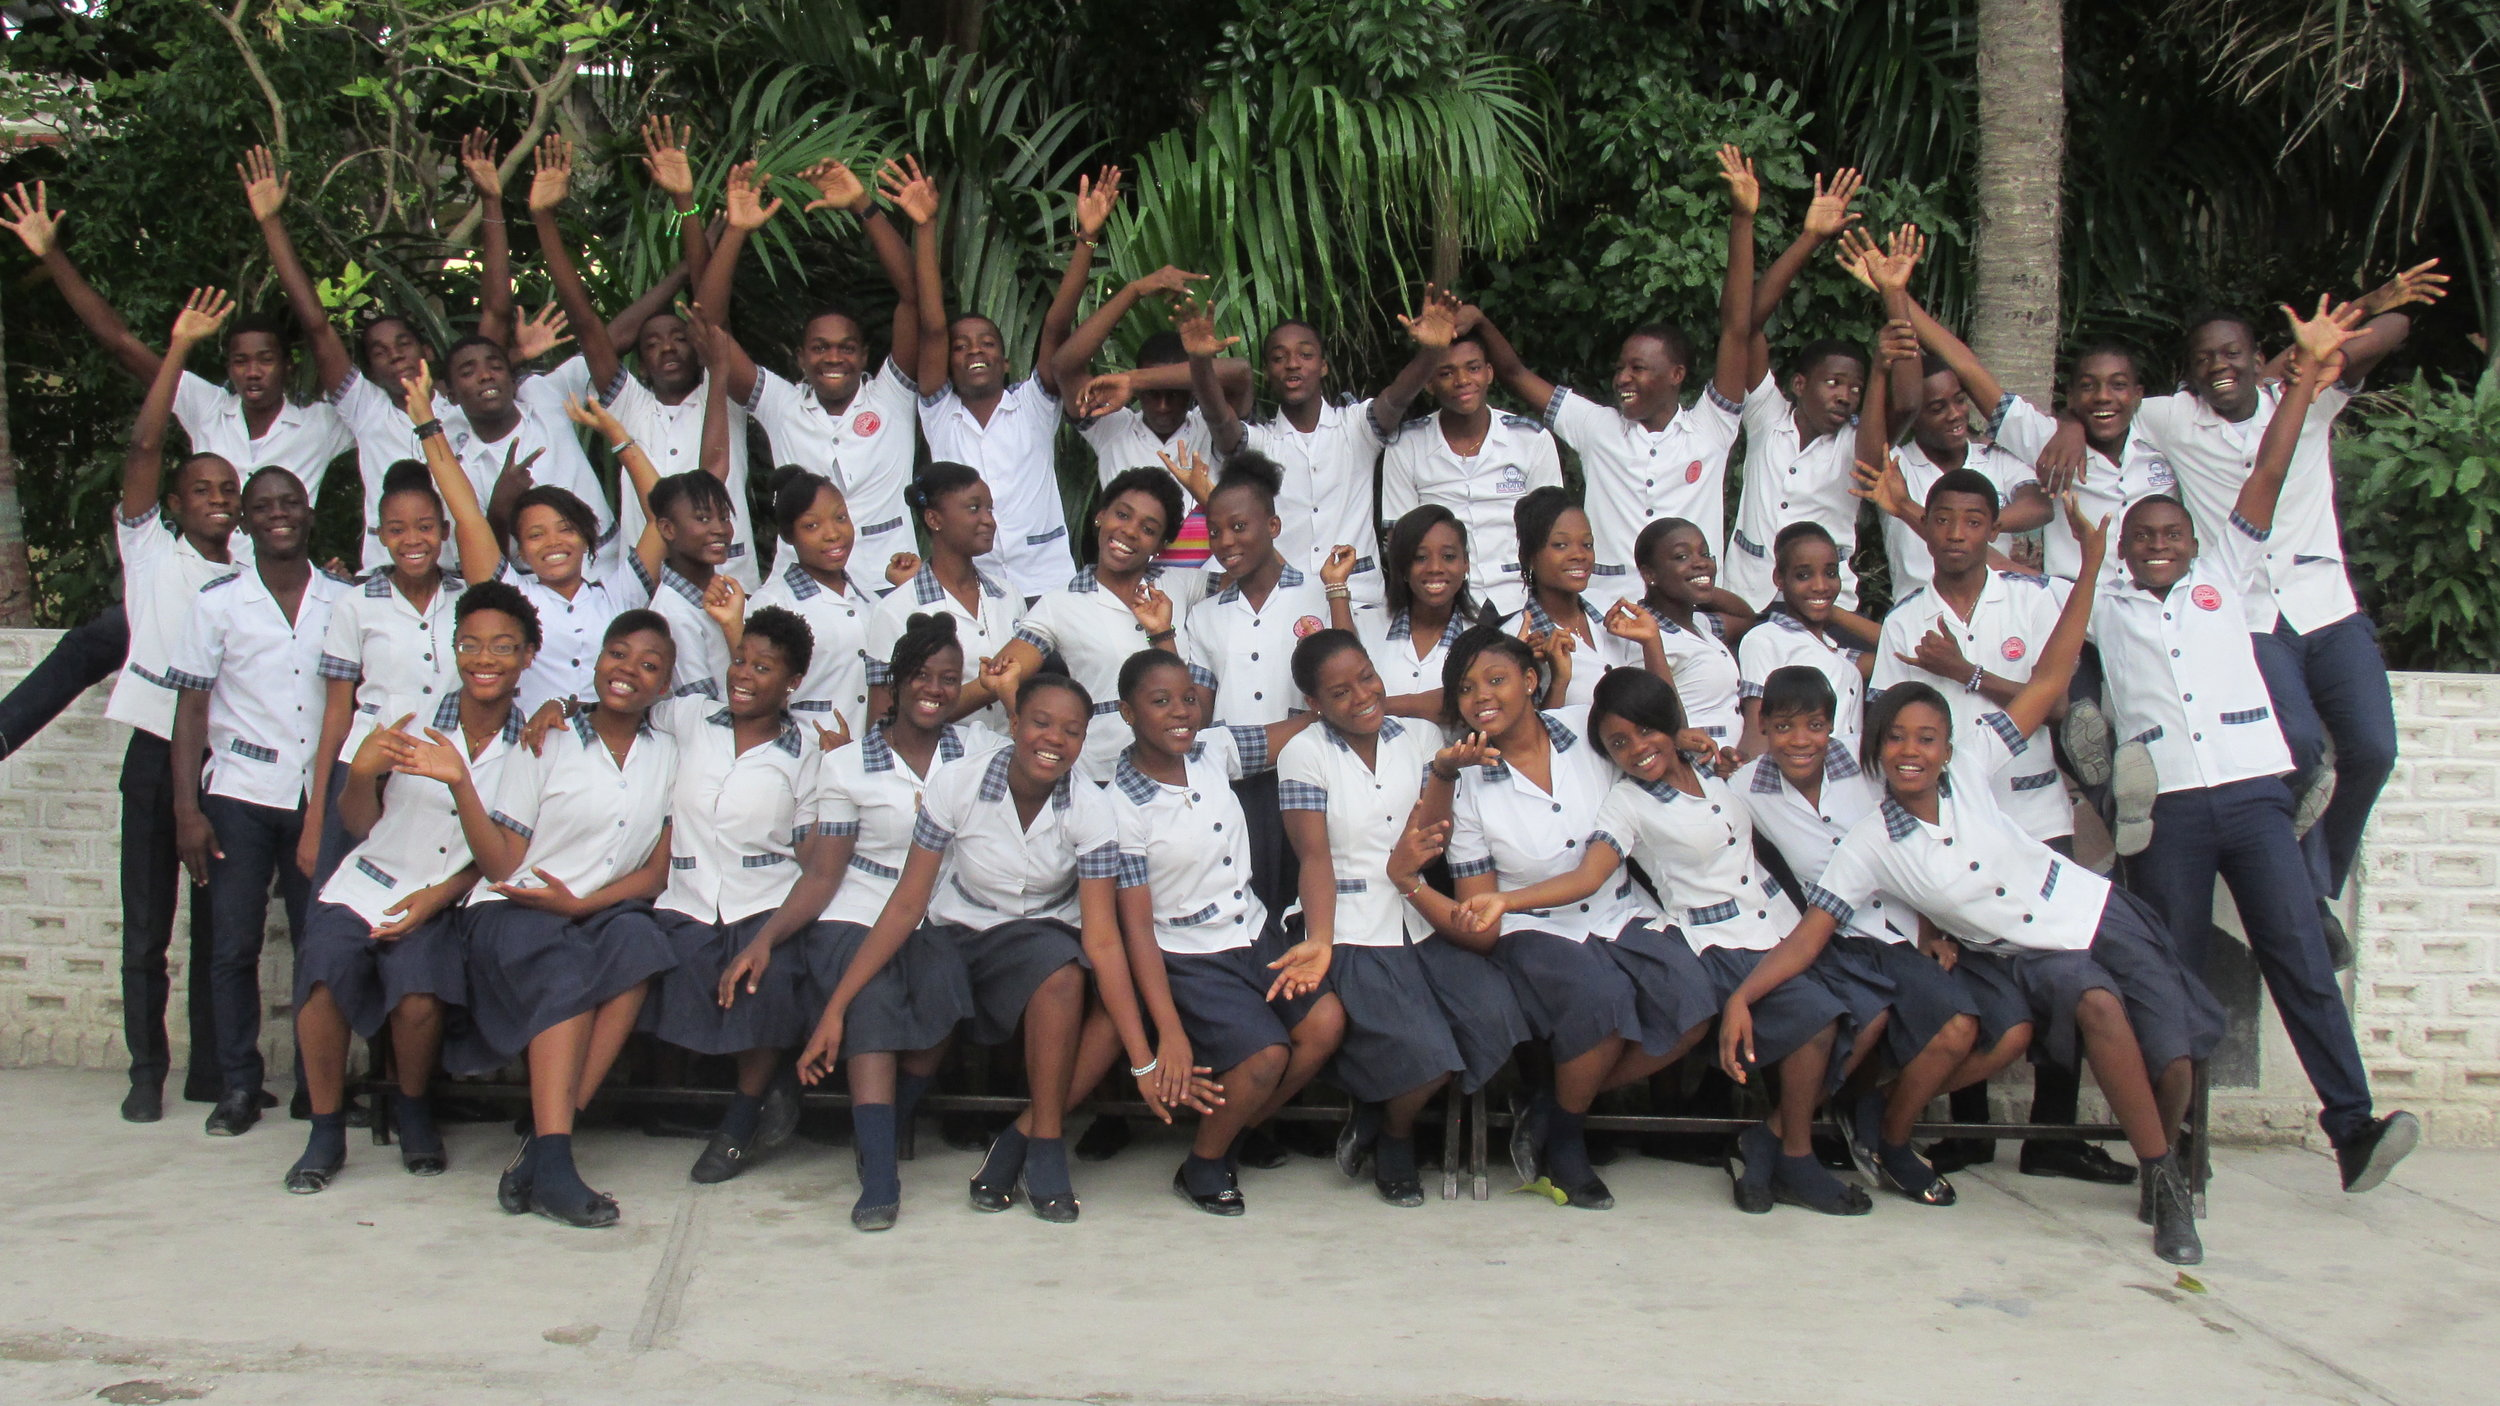 The Louverture Cleary School Santo 5 Philo Class of 2019 achieved a 100 percent pass rate on Haiti's National Exam!